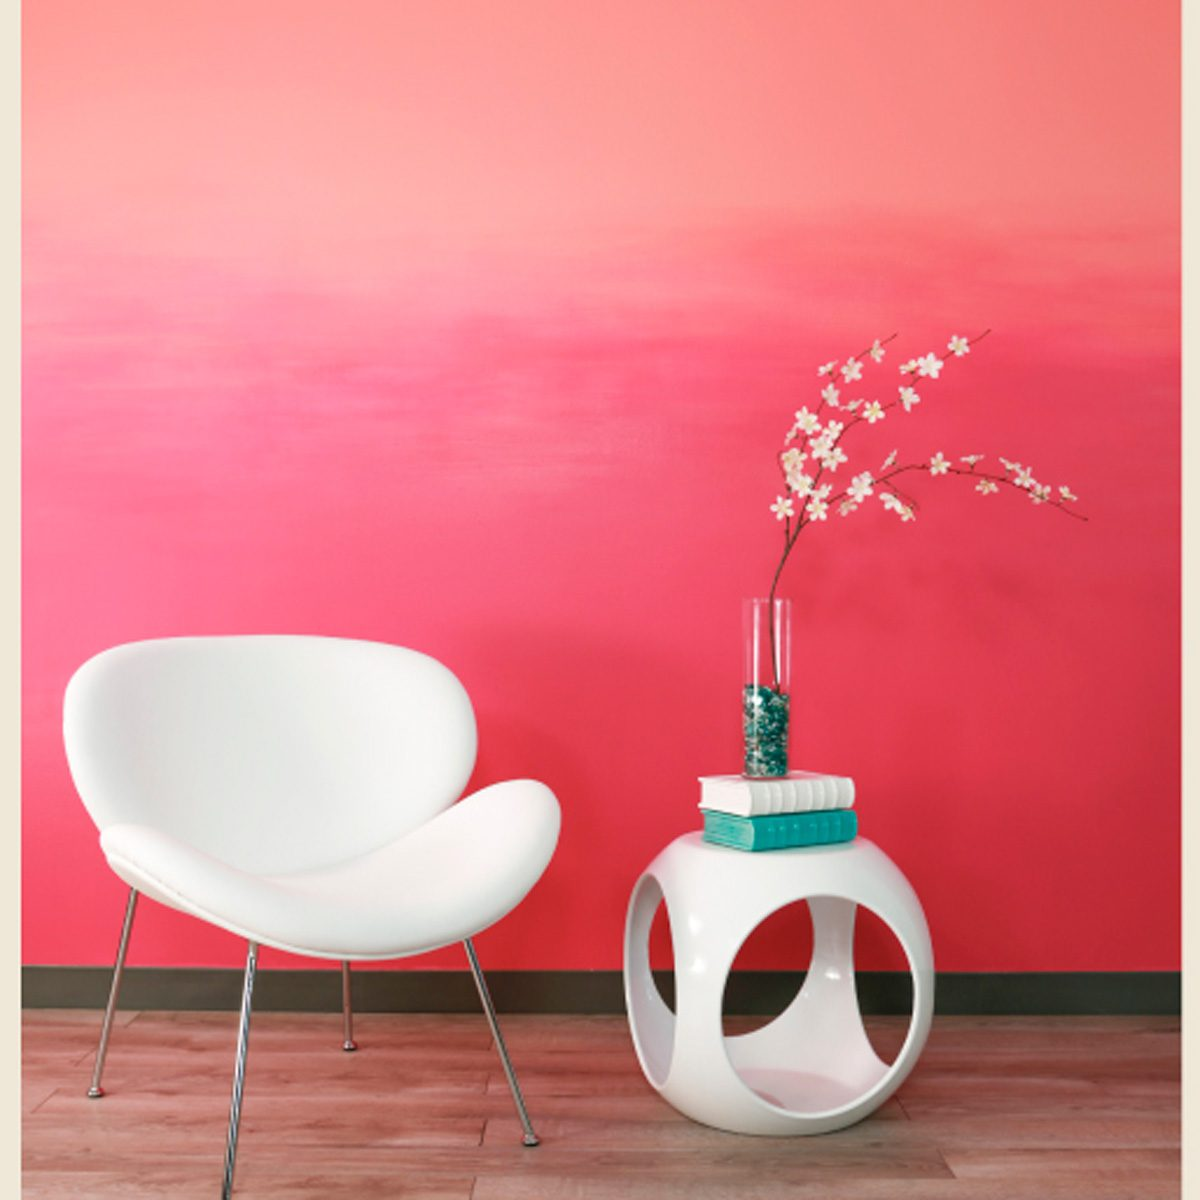 wall painting,wayfair wall paintings,buy art online,wayfair wall art,interior house painters,creative wall painting techniques,saatchi art,artwork for walls,prints for sale,wall painting 3d,two toned walls painting ideas,two color wall painting ideas,creative wall painting techniques,cool paint techniques for walls,interior wall painting ideas,living room wall painting ideas,home interior painting ideas pictures,different ways to paint walls,wall painting ideas,wall painting art,wall painting mr brainwash,18 genius ideas to decorate boring walls,15 different wall painting ideas,4 wall painting ideas for easy method,wall art